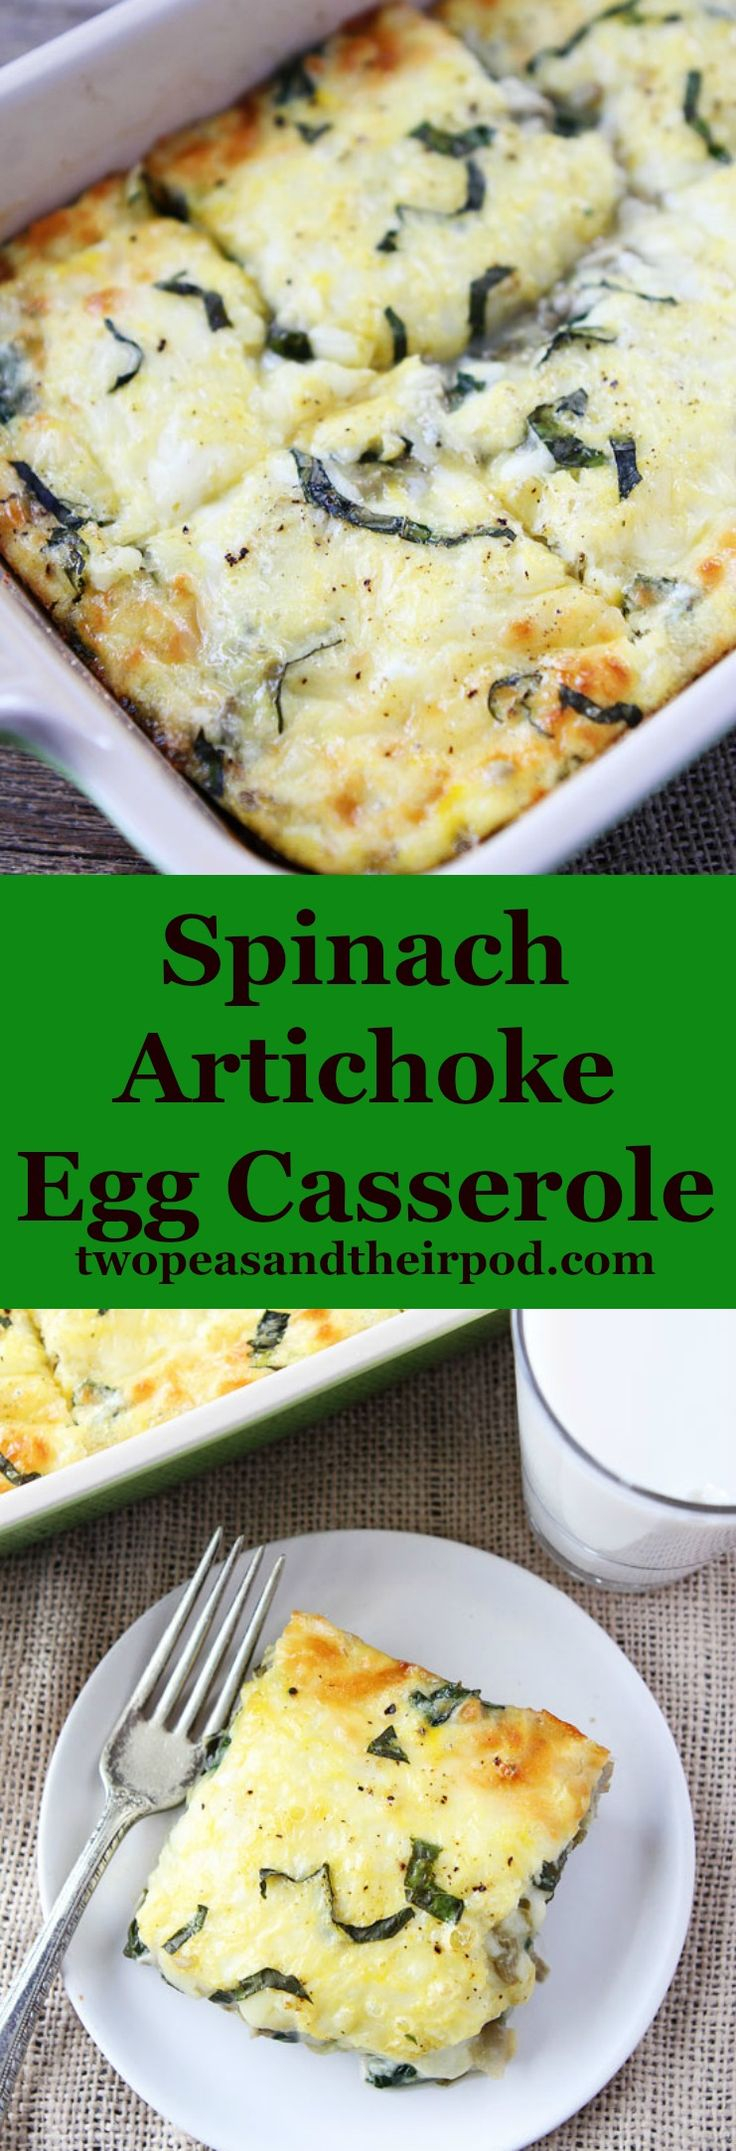 Spinach Artichoke Egg Casserole Recipe on twopeasandtheirpod.com This easy egg casserole is a breakfast favorite! It reheats well and everyone loves it!